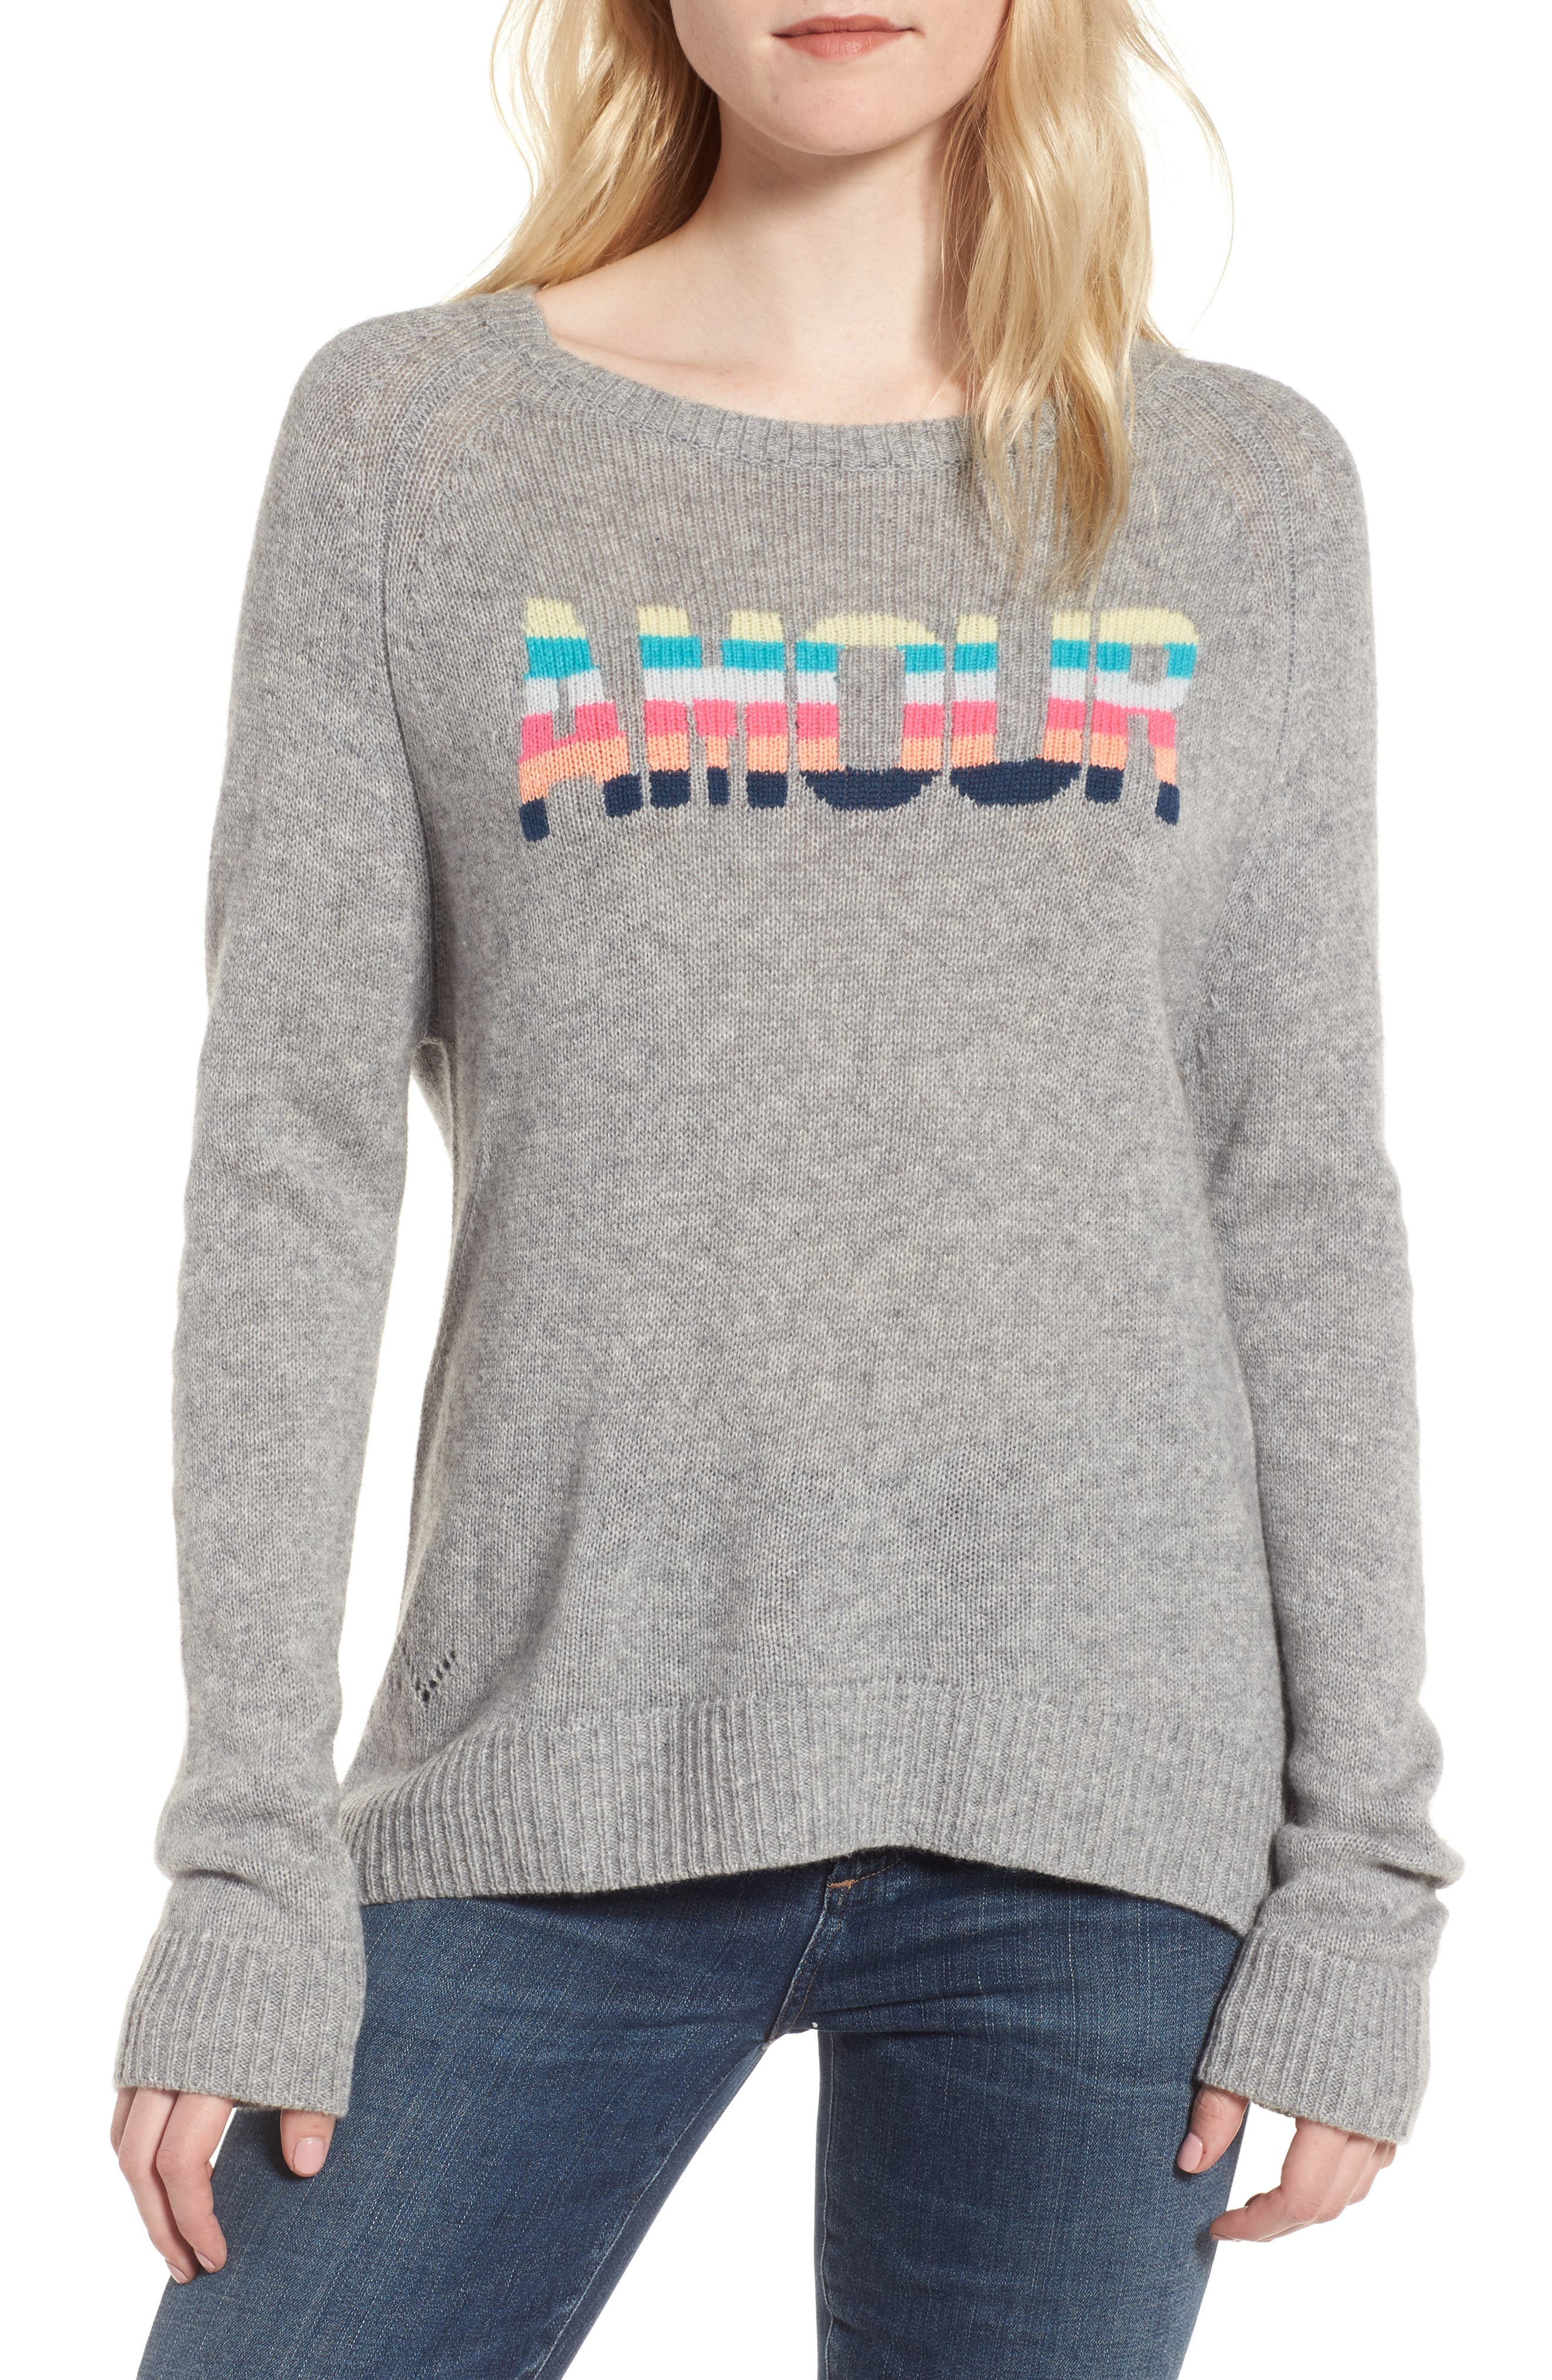 Baly Bis Cashmere Sweater,                             Main thumbnail 1, color,                             078